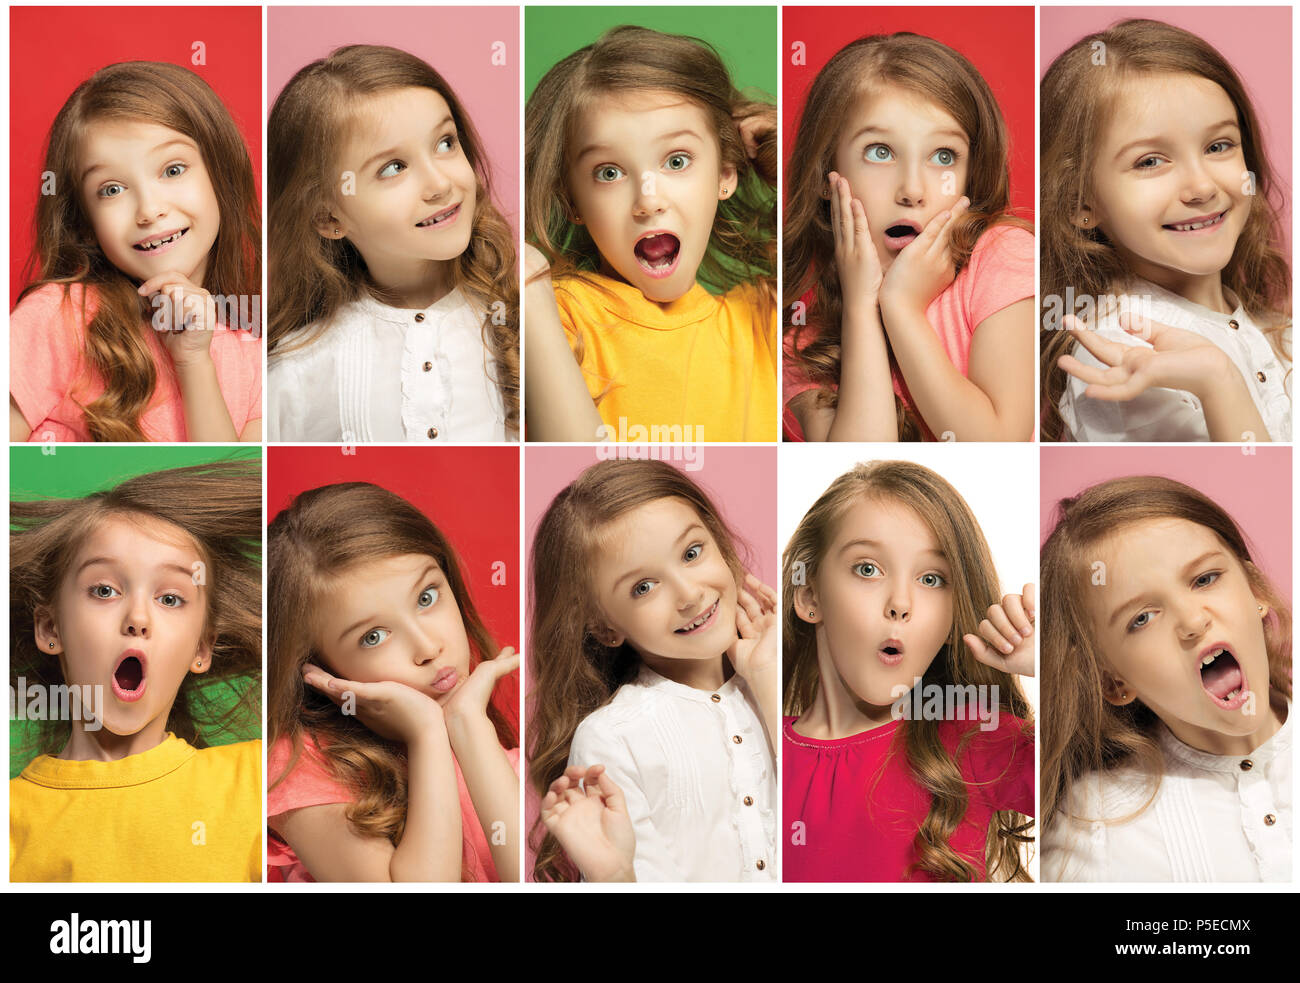 The collage of different human facial expressions, emotions and feelings of young teen girl. - Stock Image